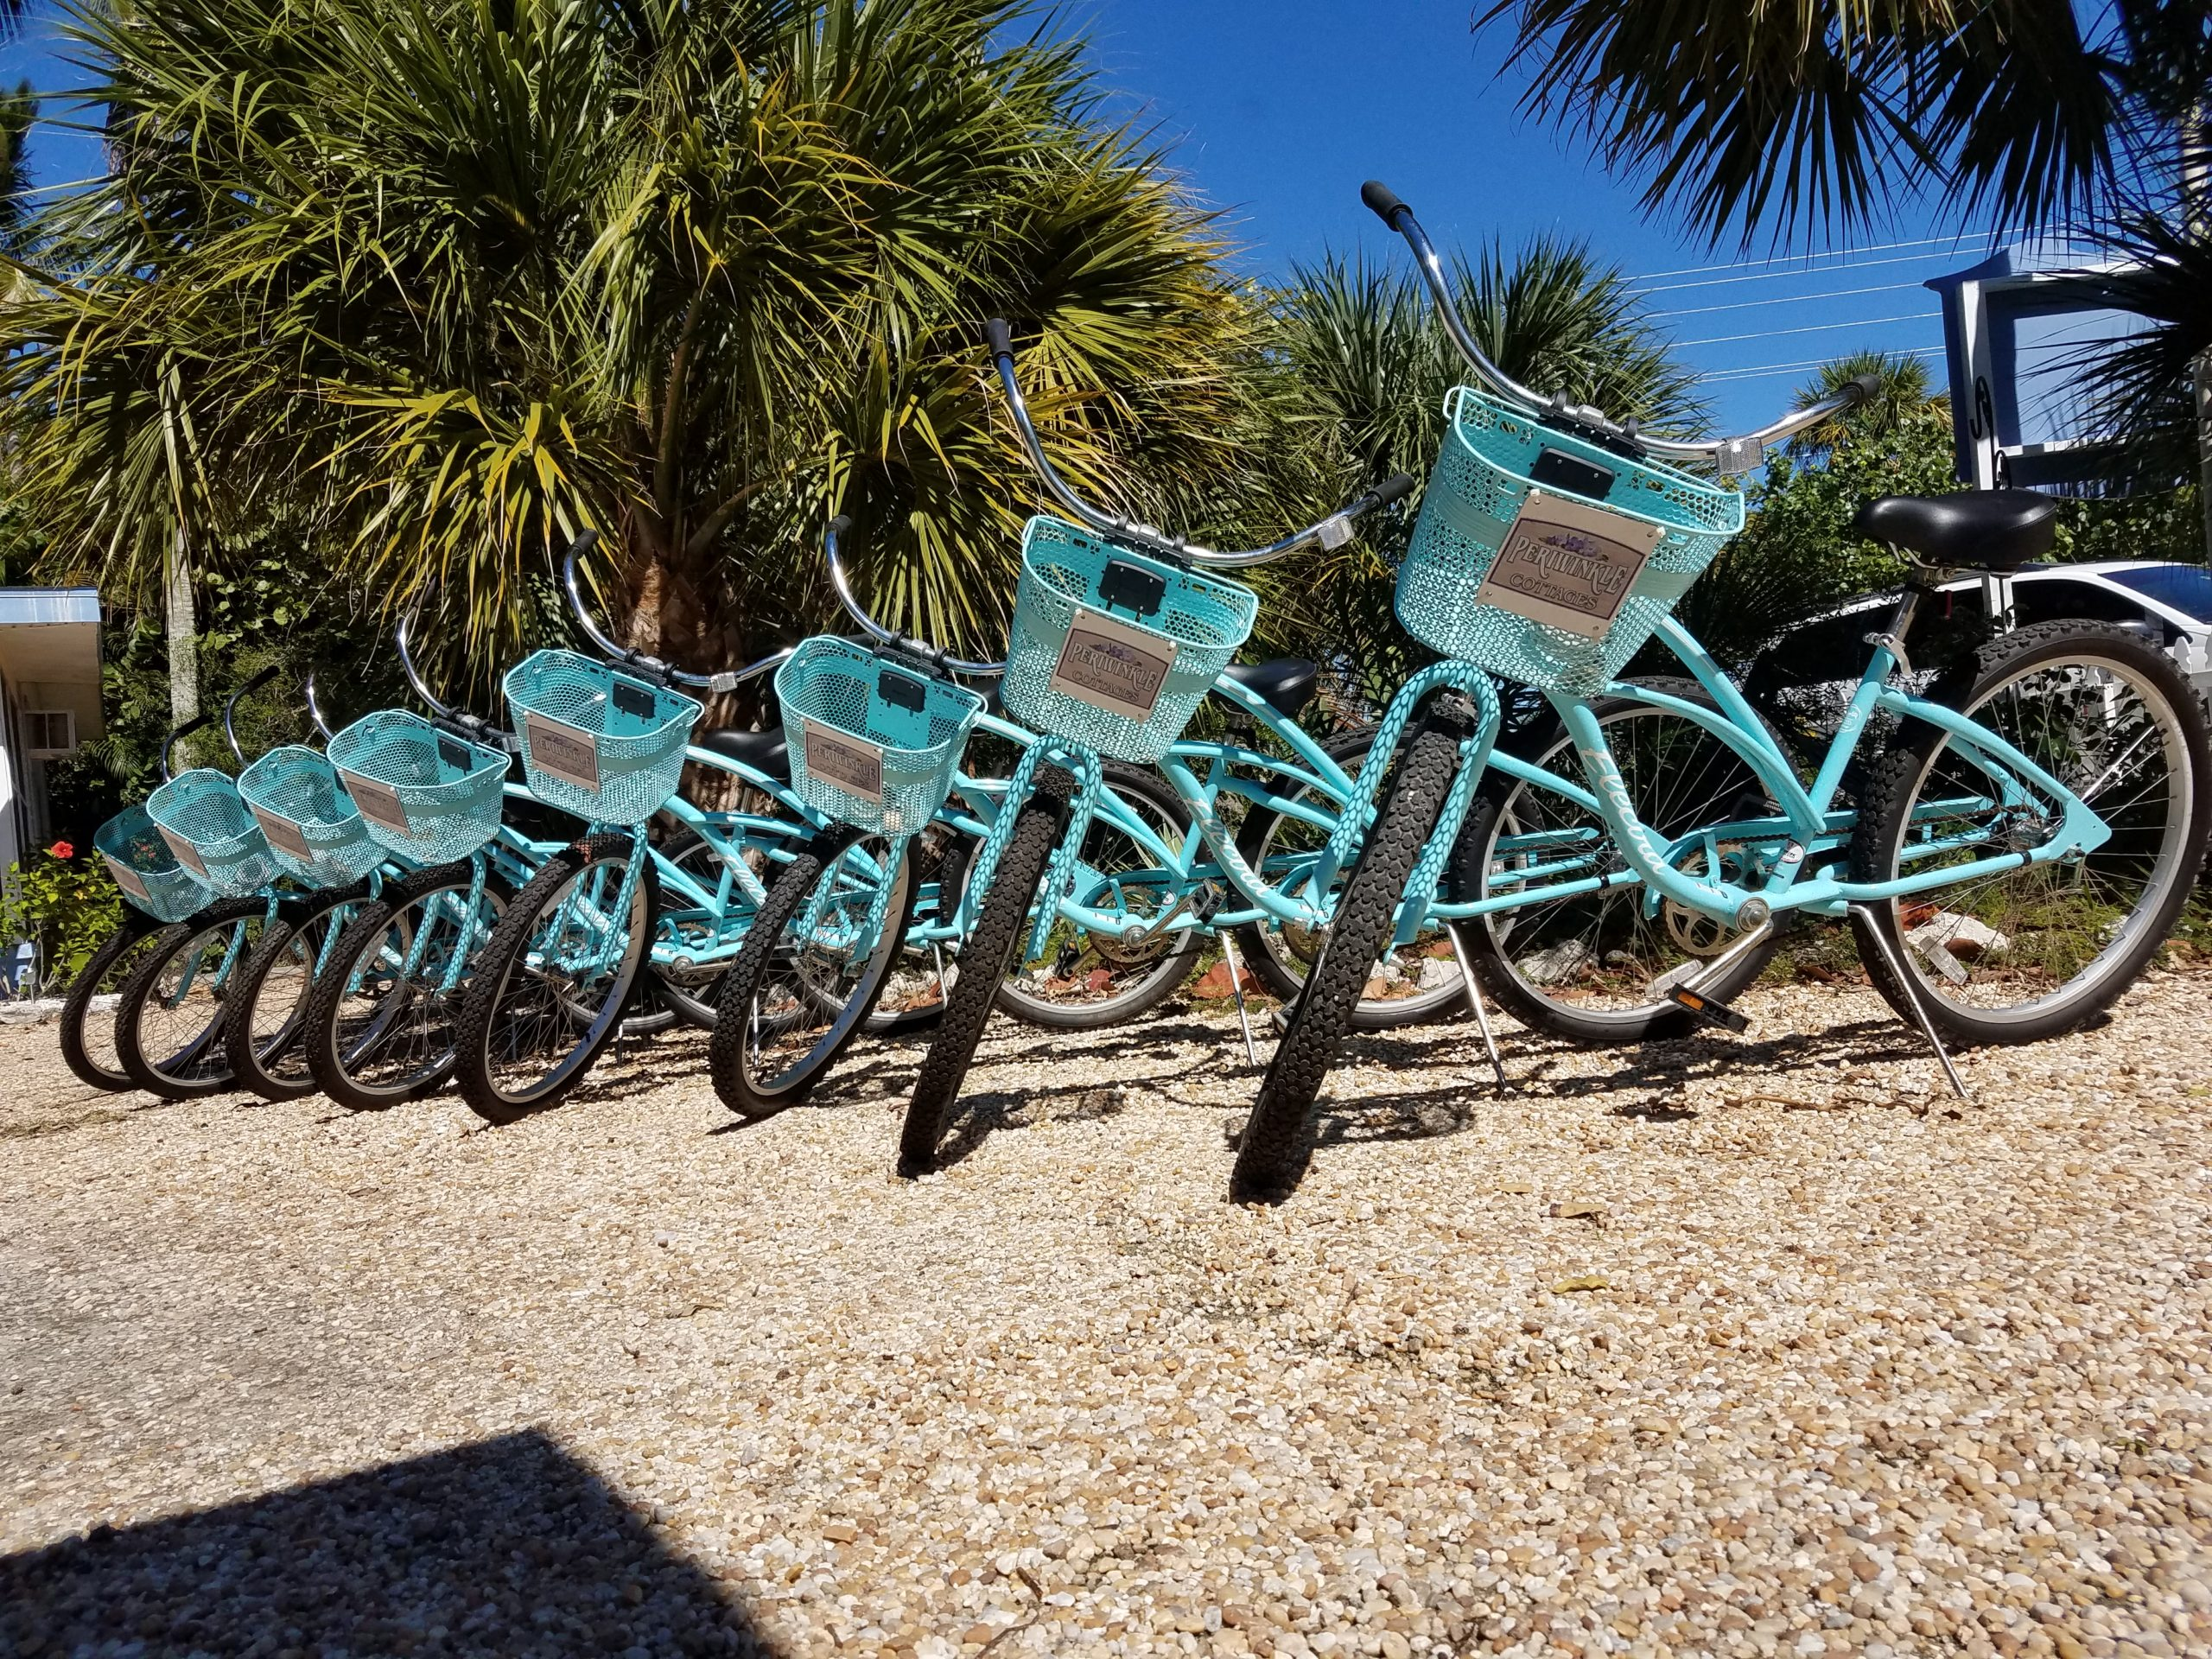 Periwinkle Cottages, Sanibel Island Bikes